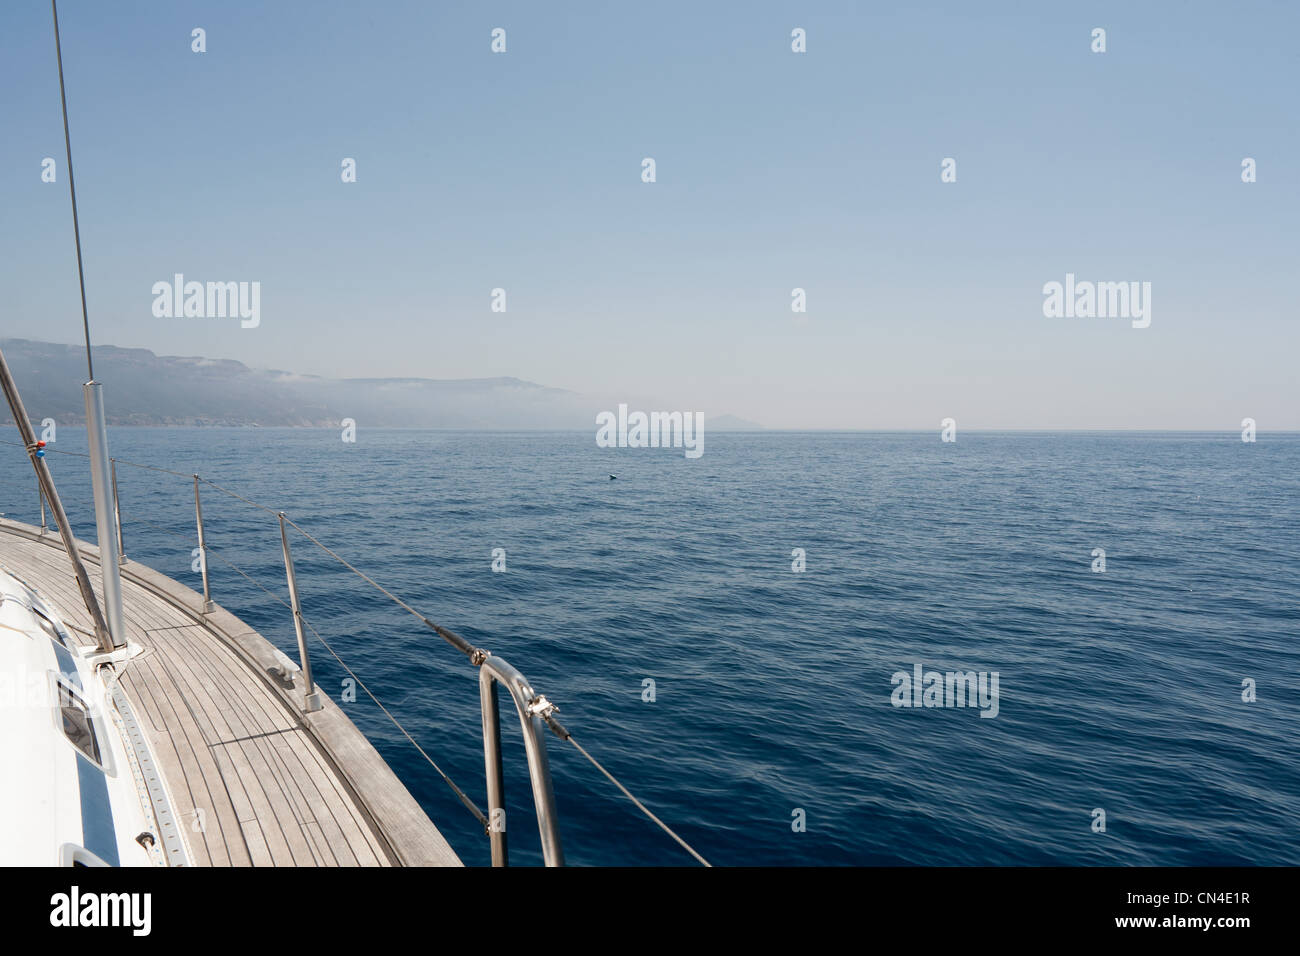 View of the side of a yacht and the Sardinian coast - Stock Image